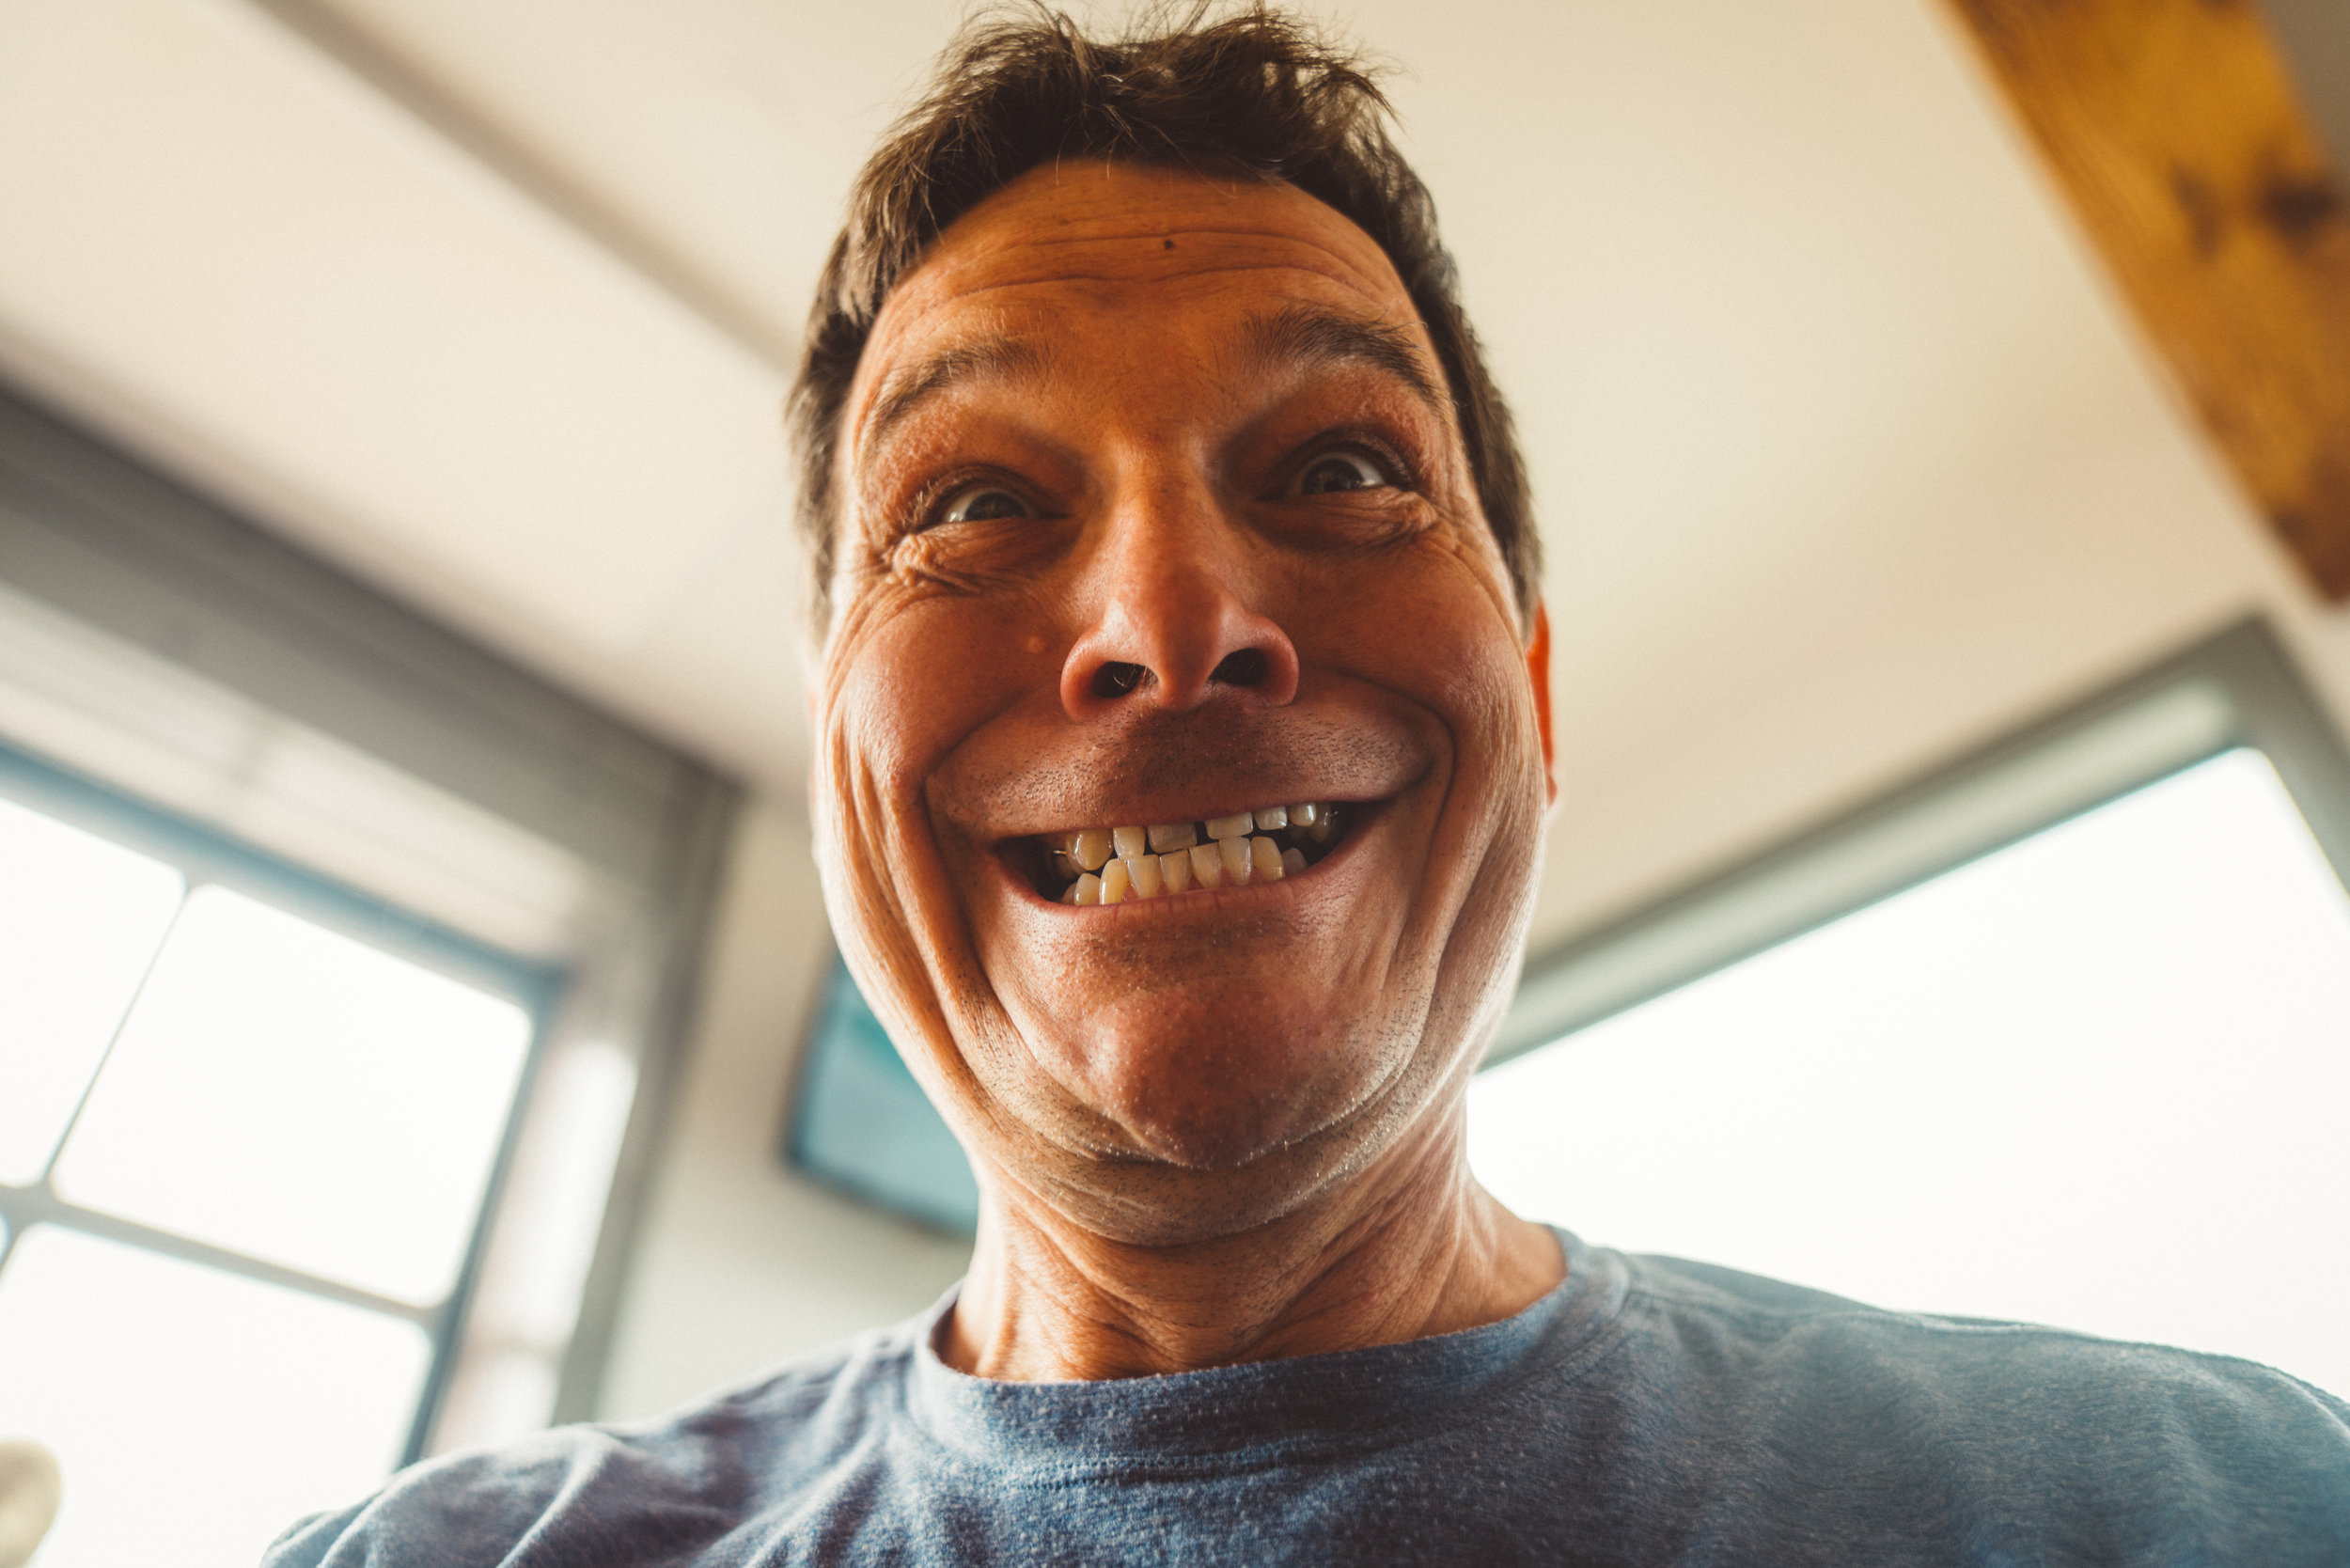 Dirk, my girlfriend's dad, took my camera and shot this so now it's getting posted.